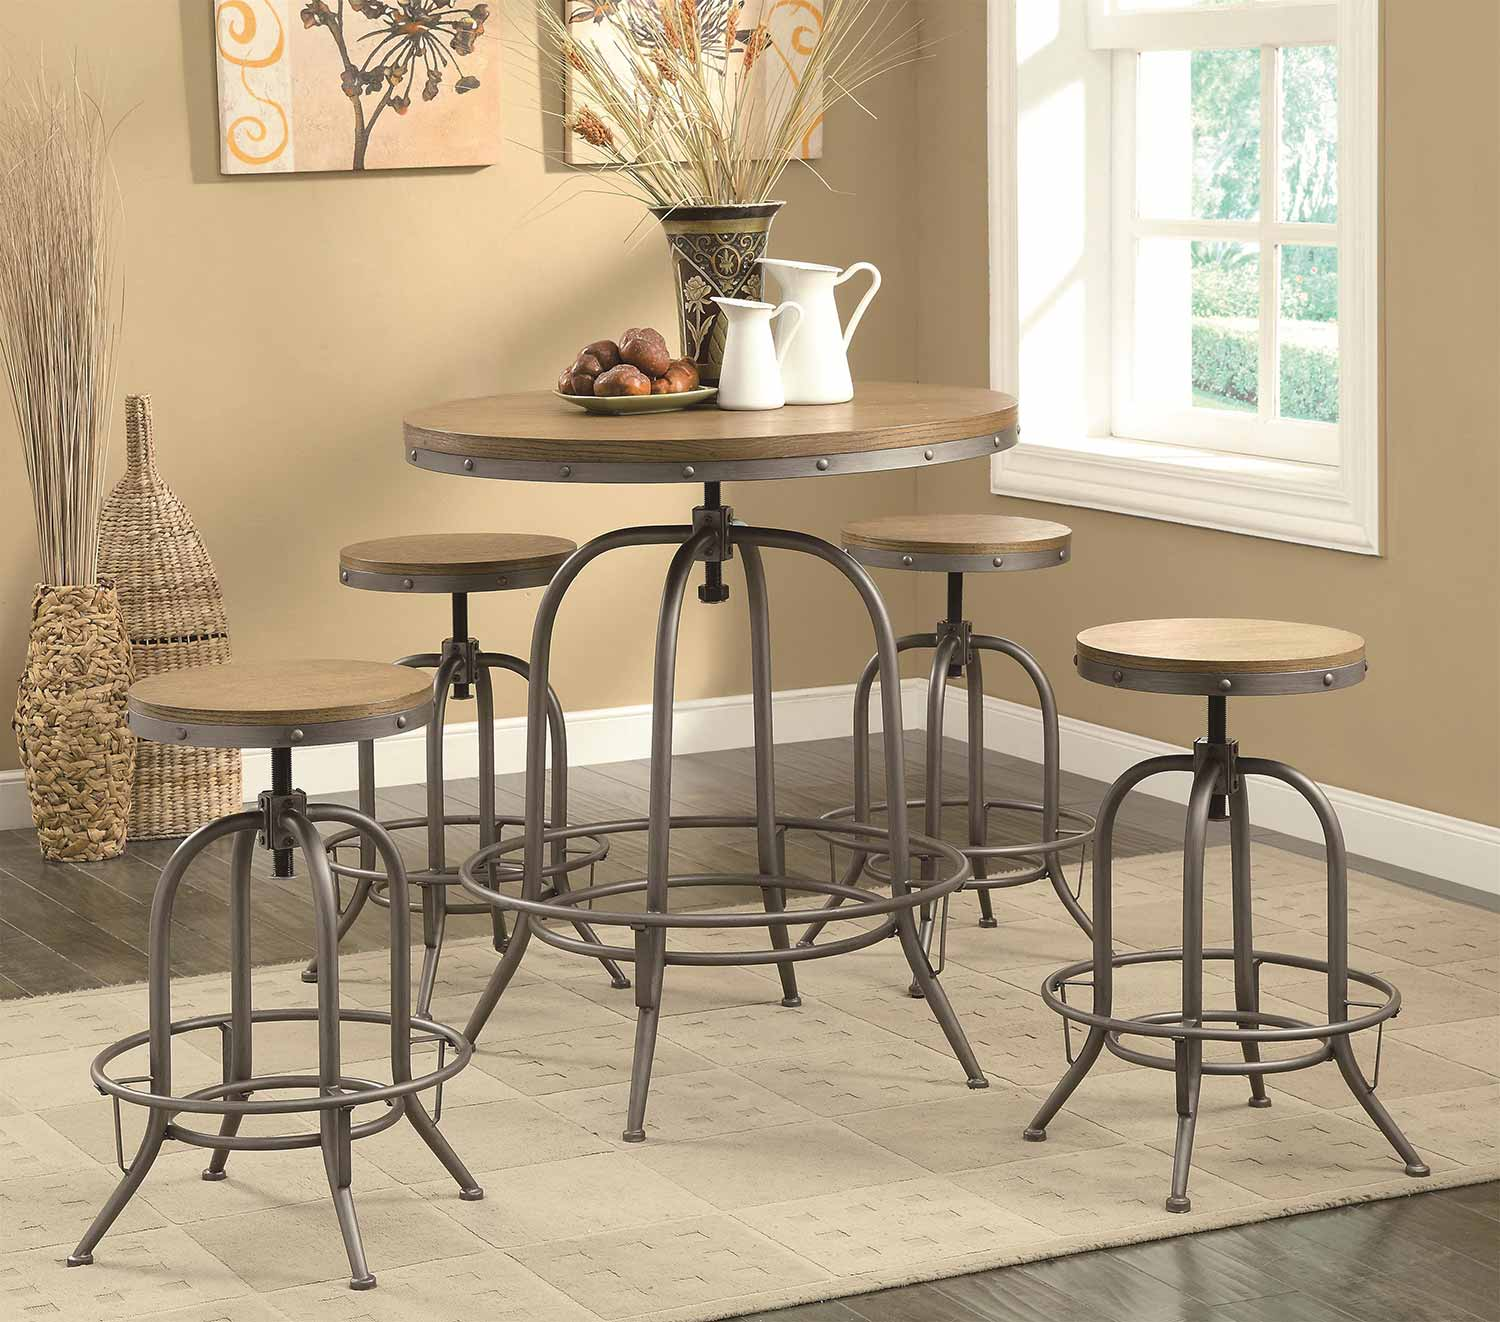 Coaster Transitional Adjustable Bar Set - Brown/Antique Black